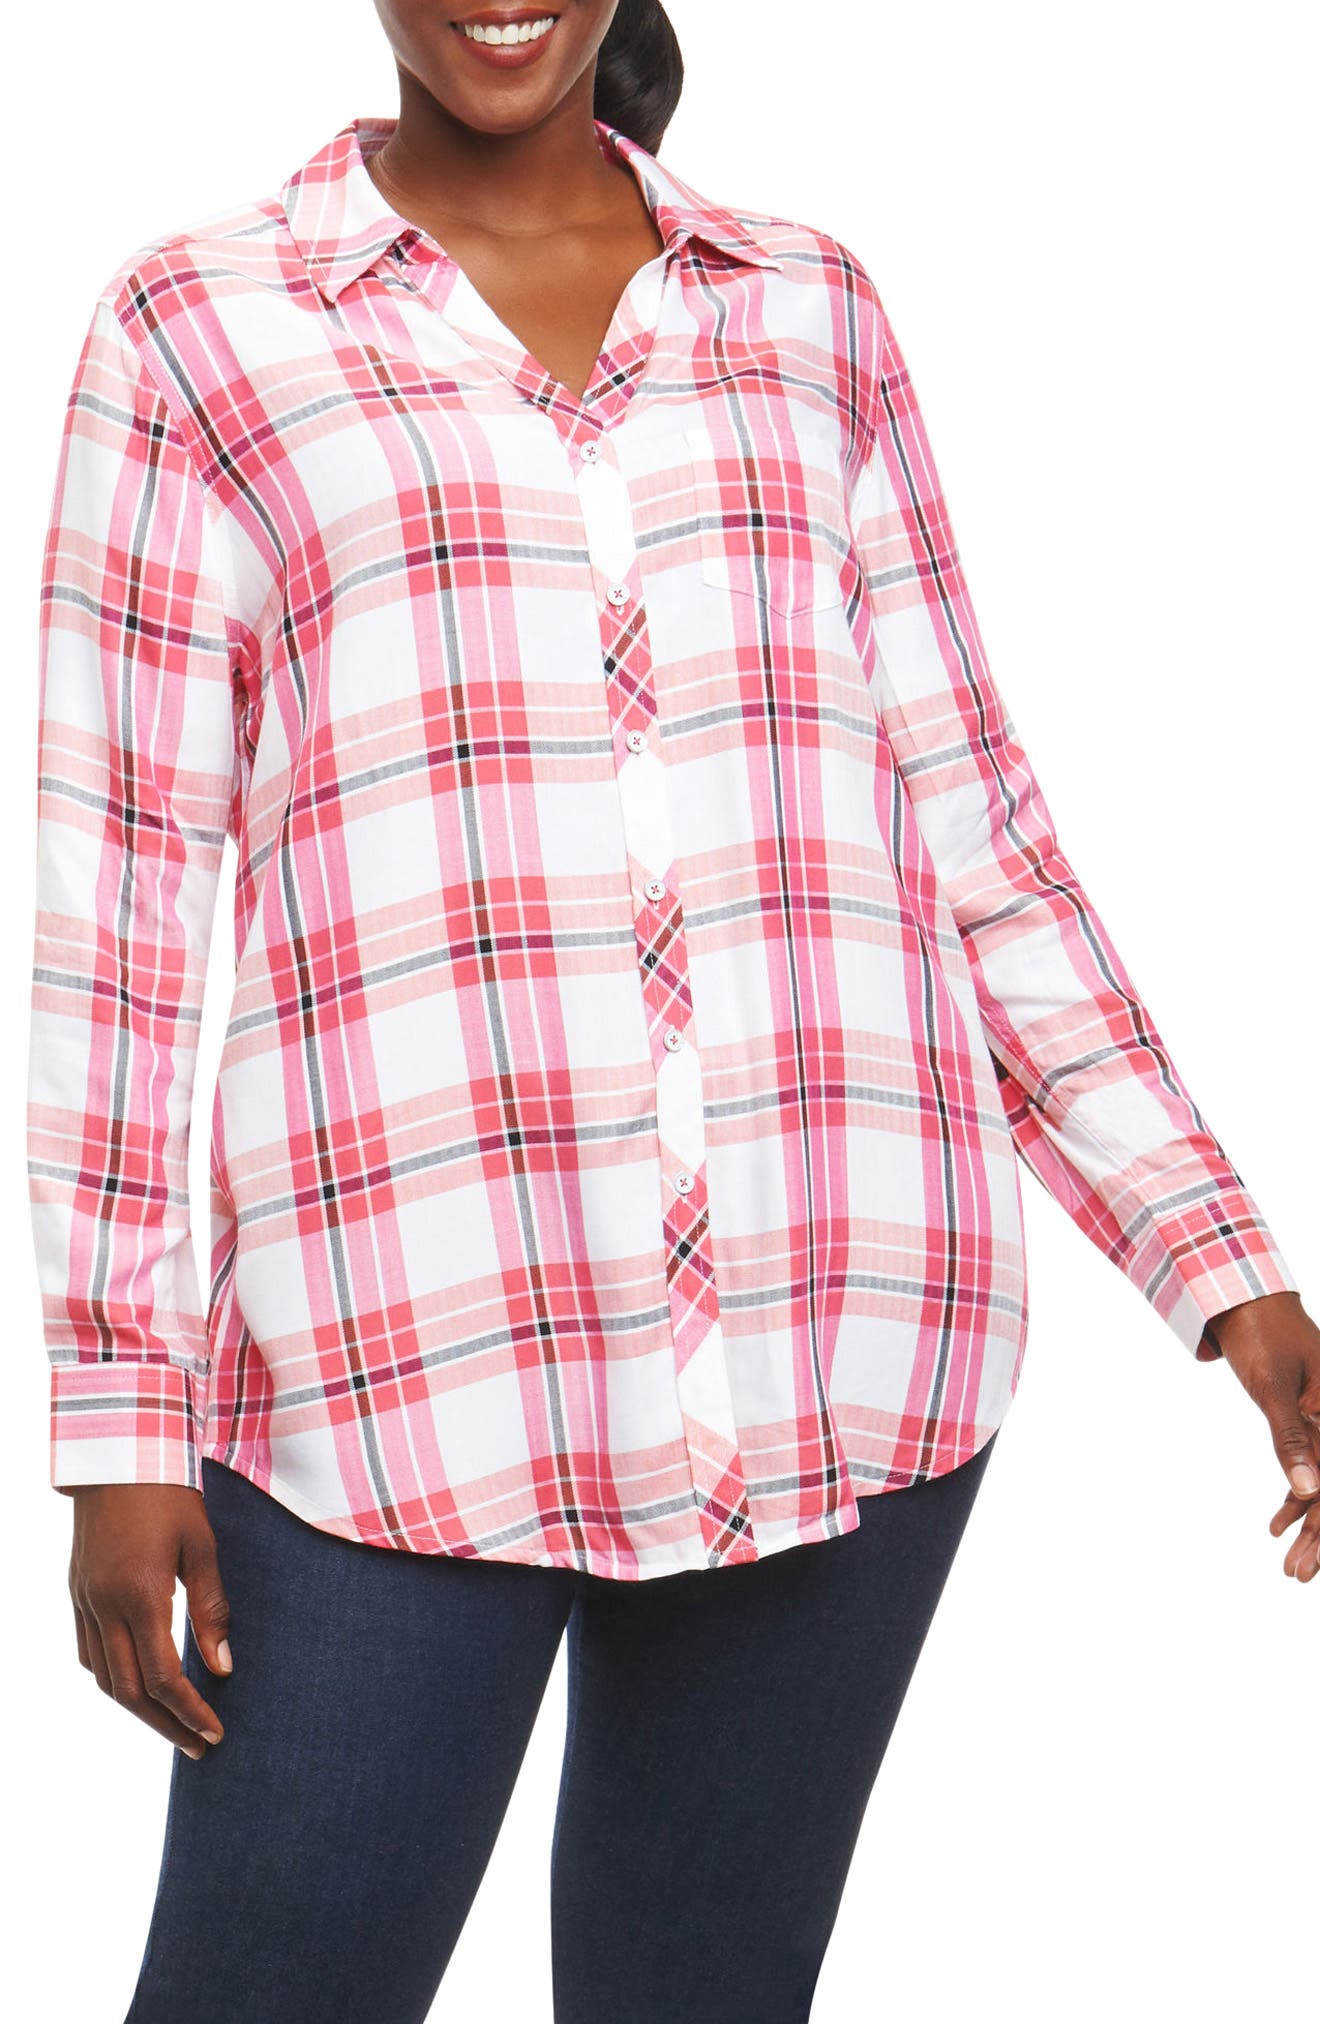 Fay Plaid Shirt,                             Main thumbnail 1, color,